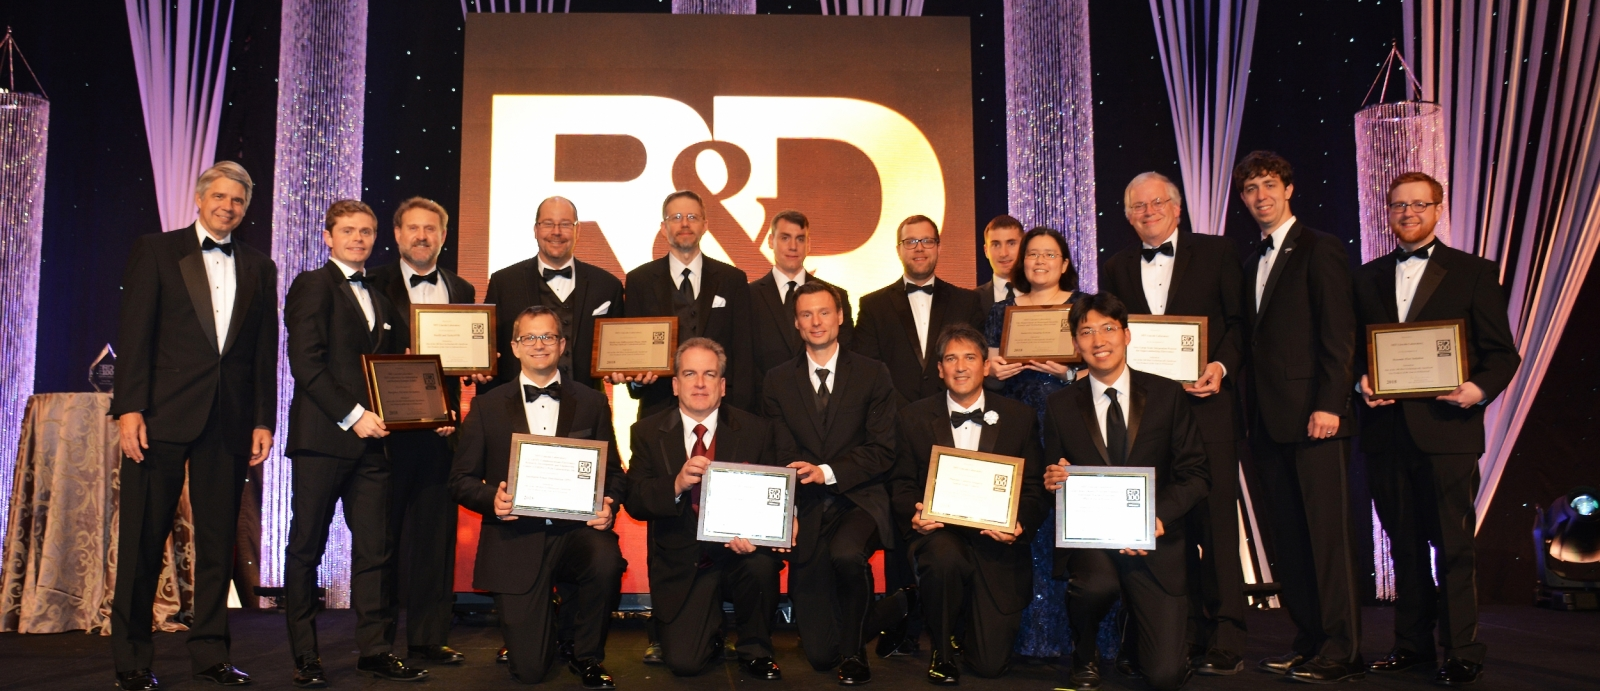 The principal researchers of MIT Lincoln Laboratory's 12 finalists for 2018 R&D 100 Awards are pictured here with Lincoln Laboratory Director Eric Evans (far left). The principal researchers of the 10 winning technologies hold up their award plaques.